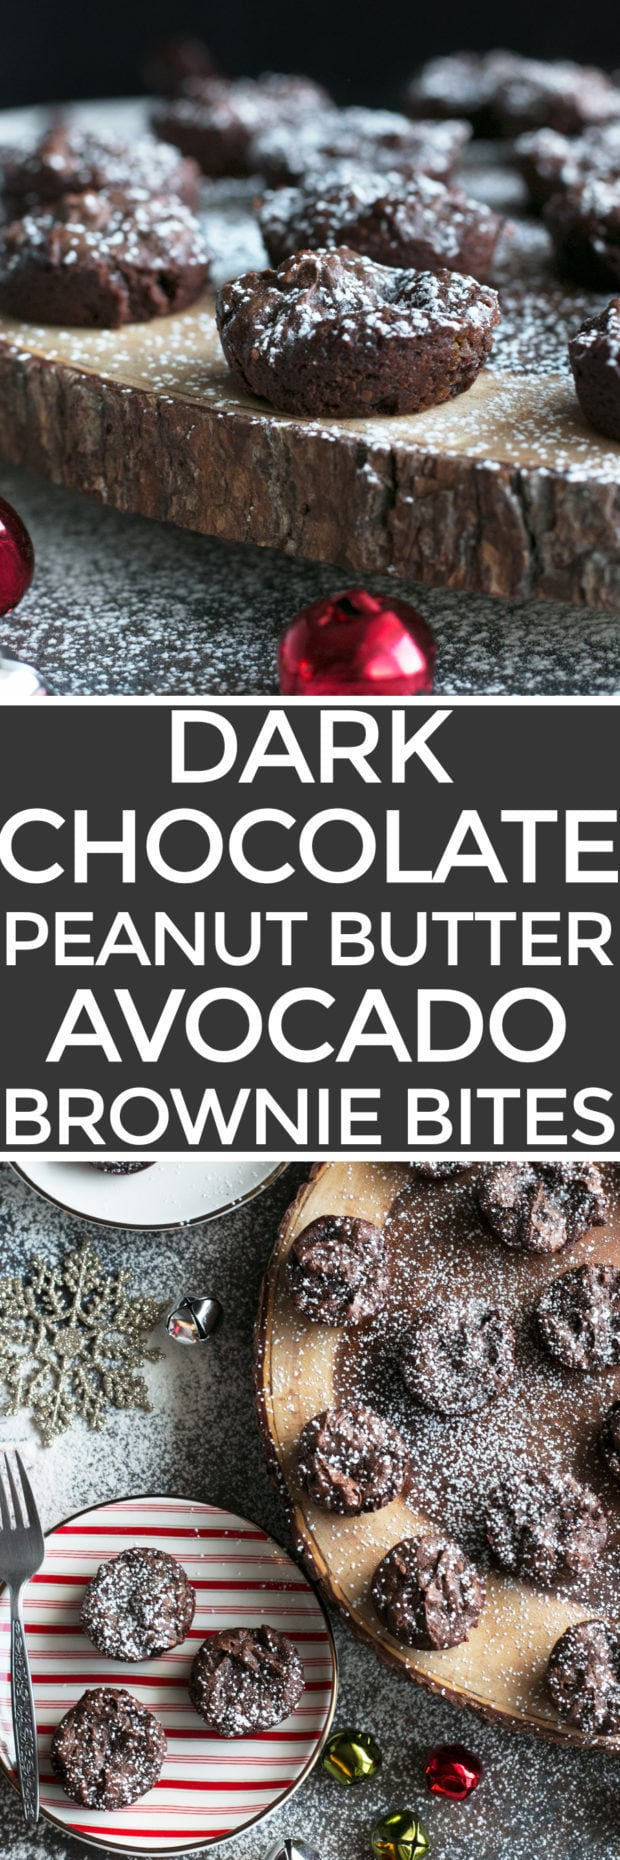 Dark Chocolate Peanut Butter Avocado Brownie Bites